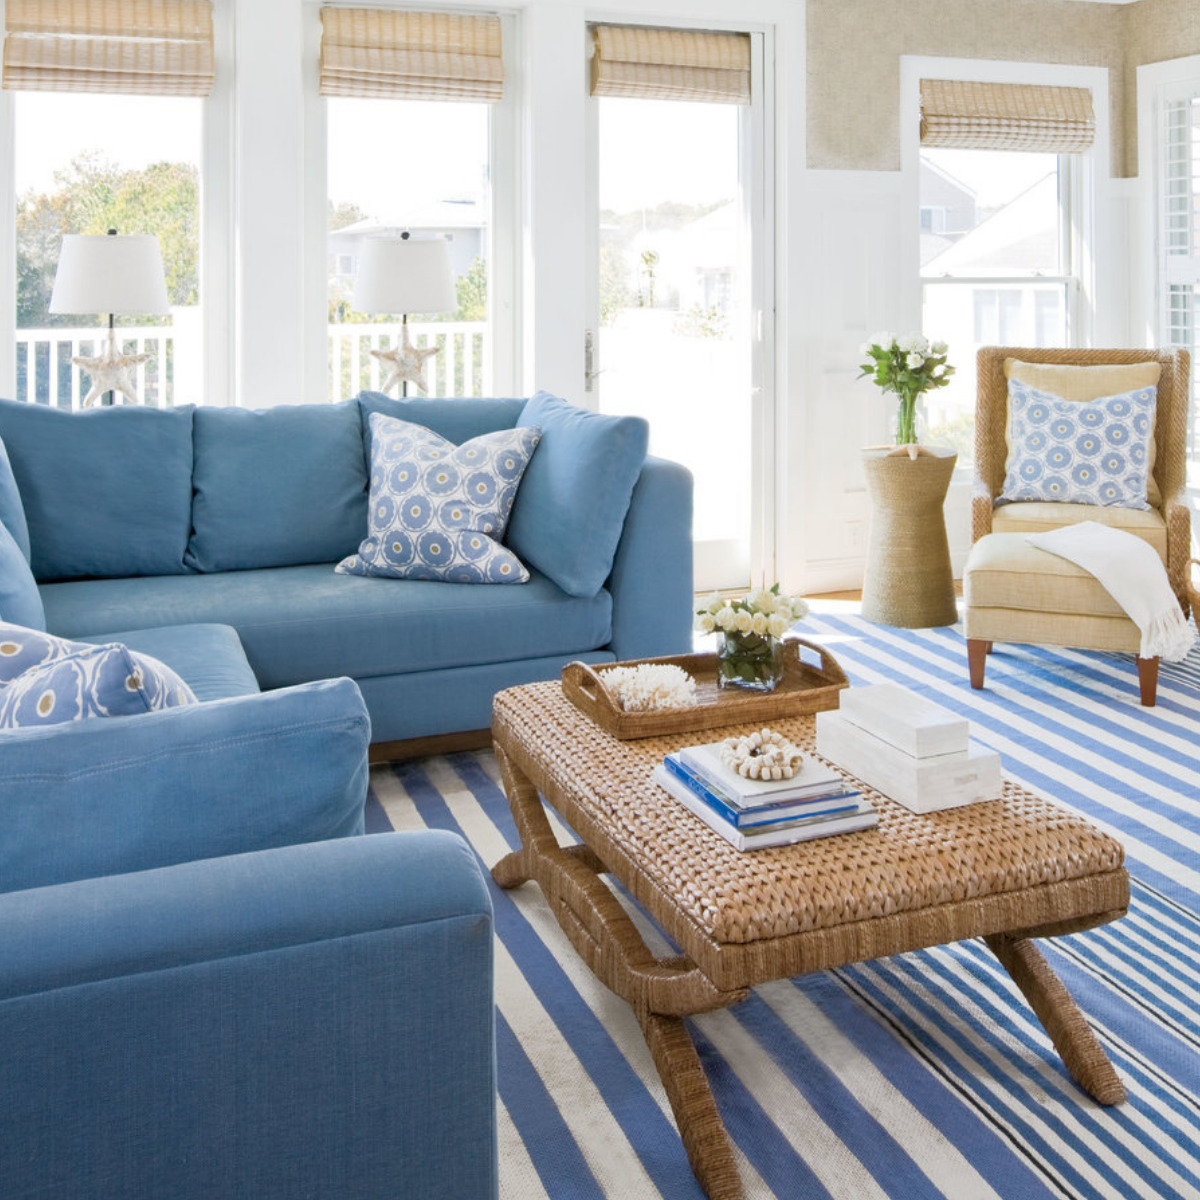 what-must-never-be-missing-in-a-coastal-style-house-29